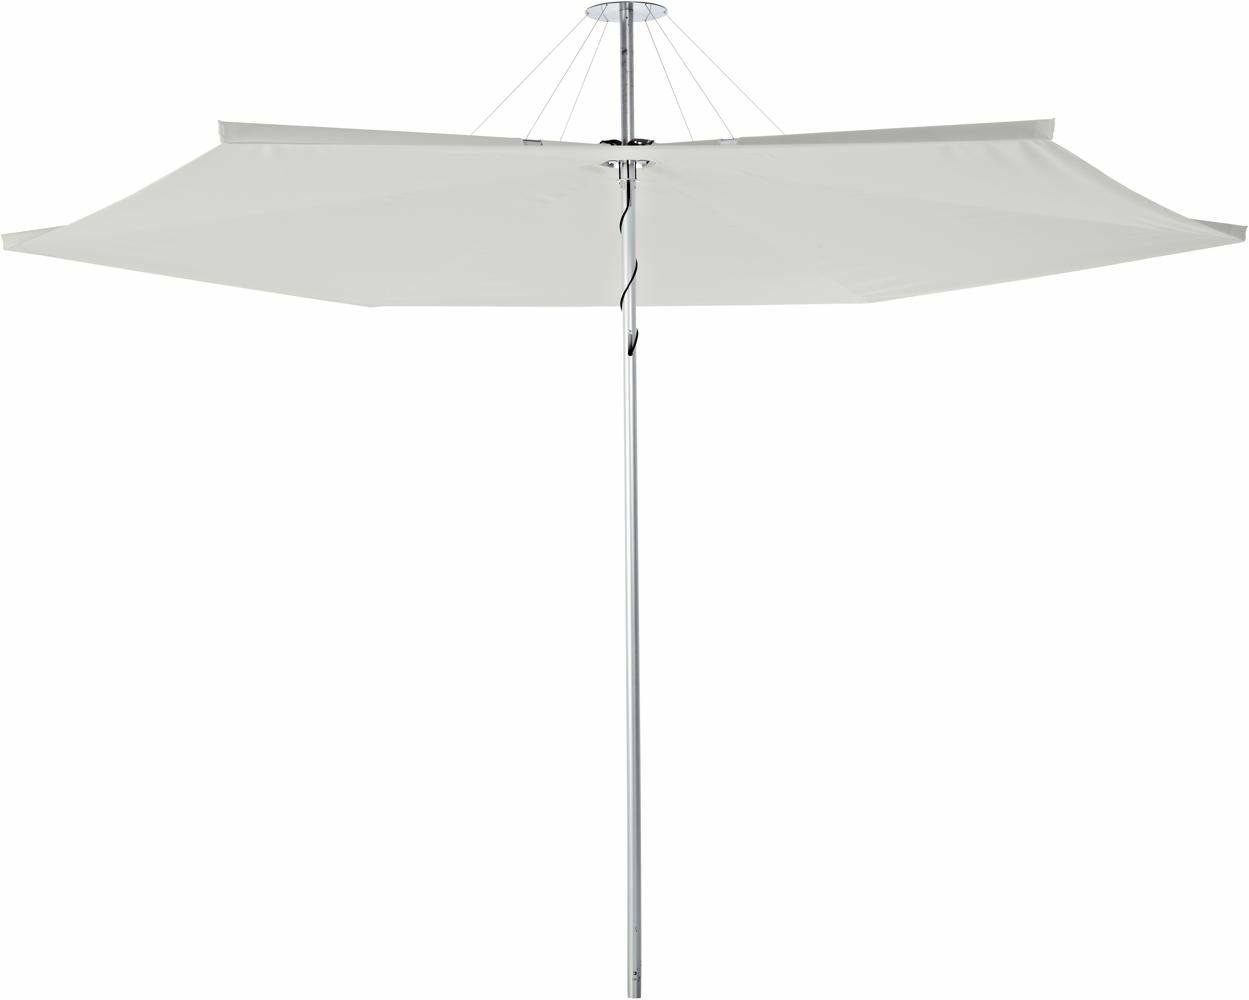 Infina canopy round 3 m in colour Canvas